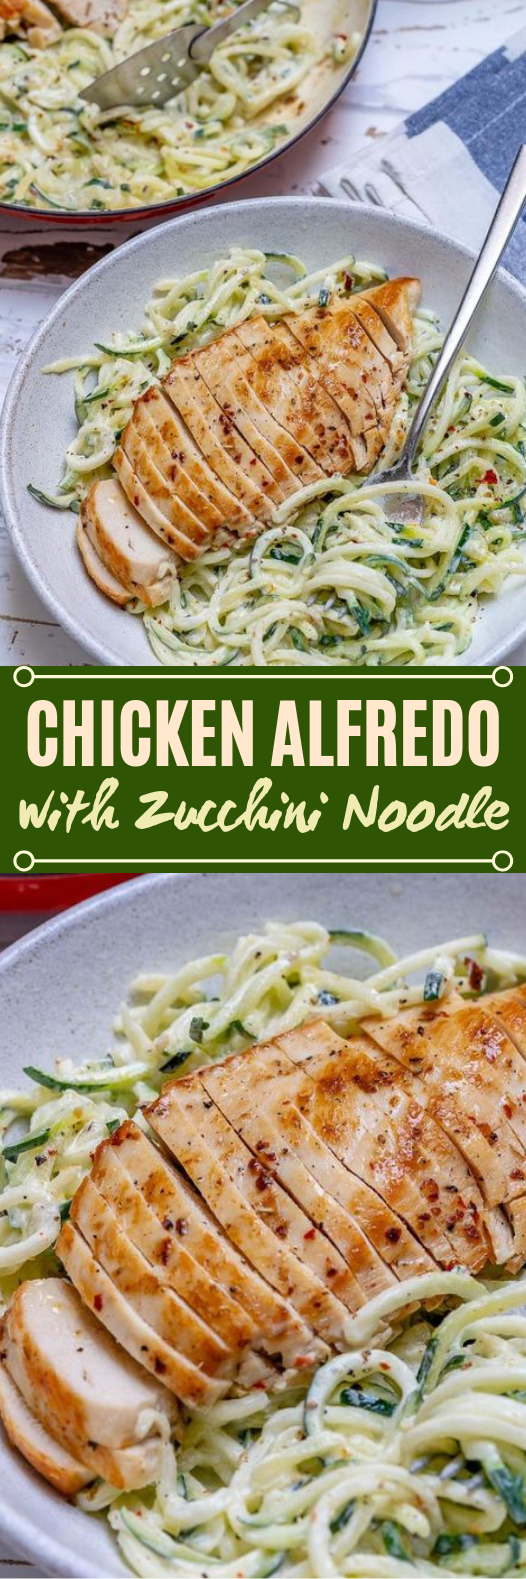 Easy Chicken Alfredo with Zoodles #healthy #keto